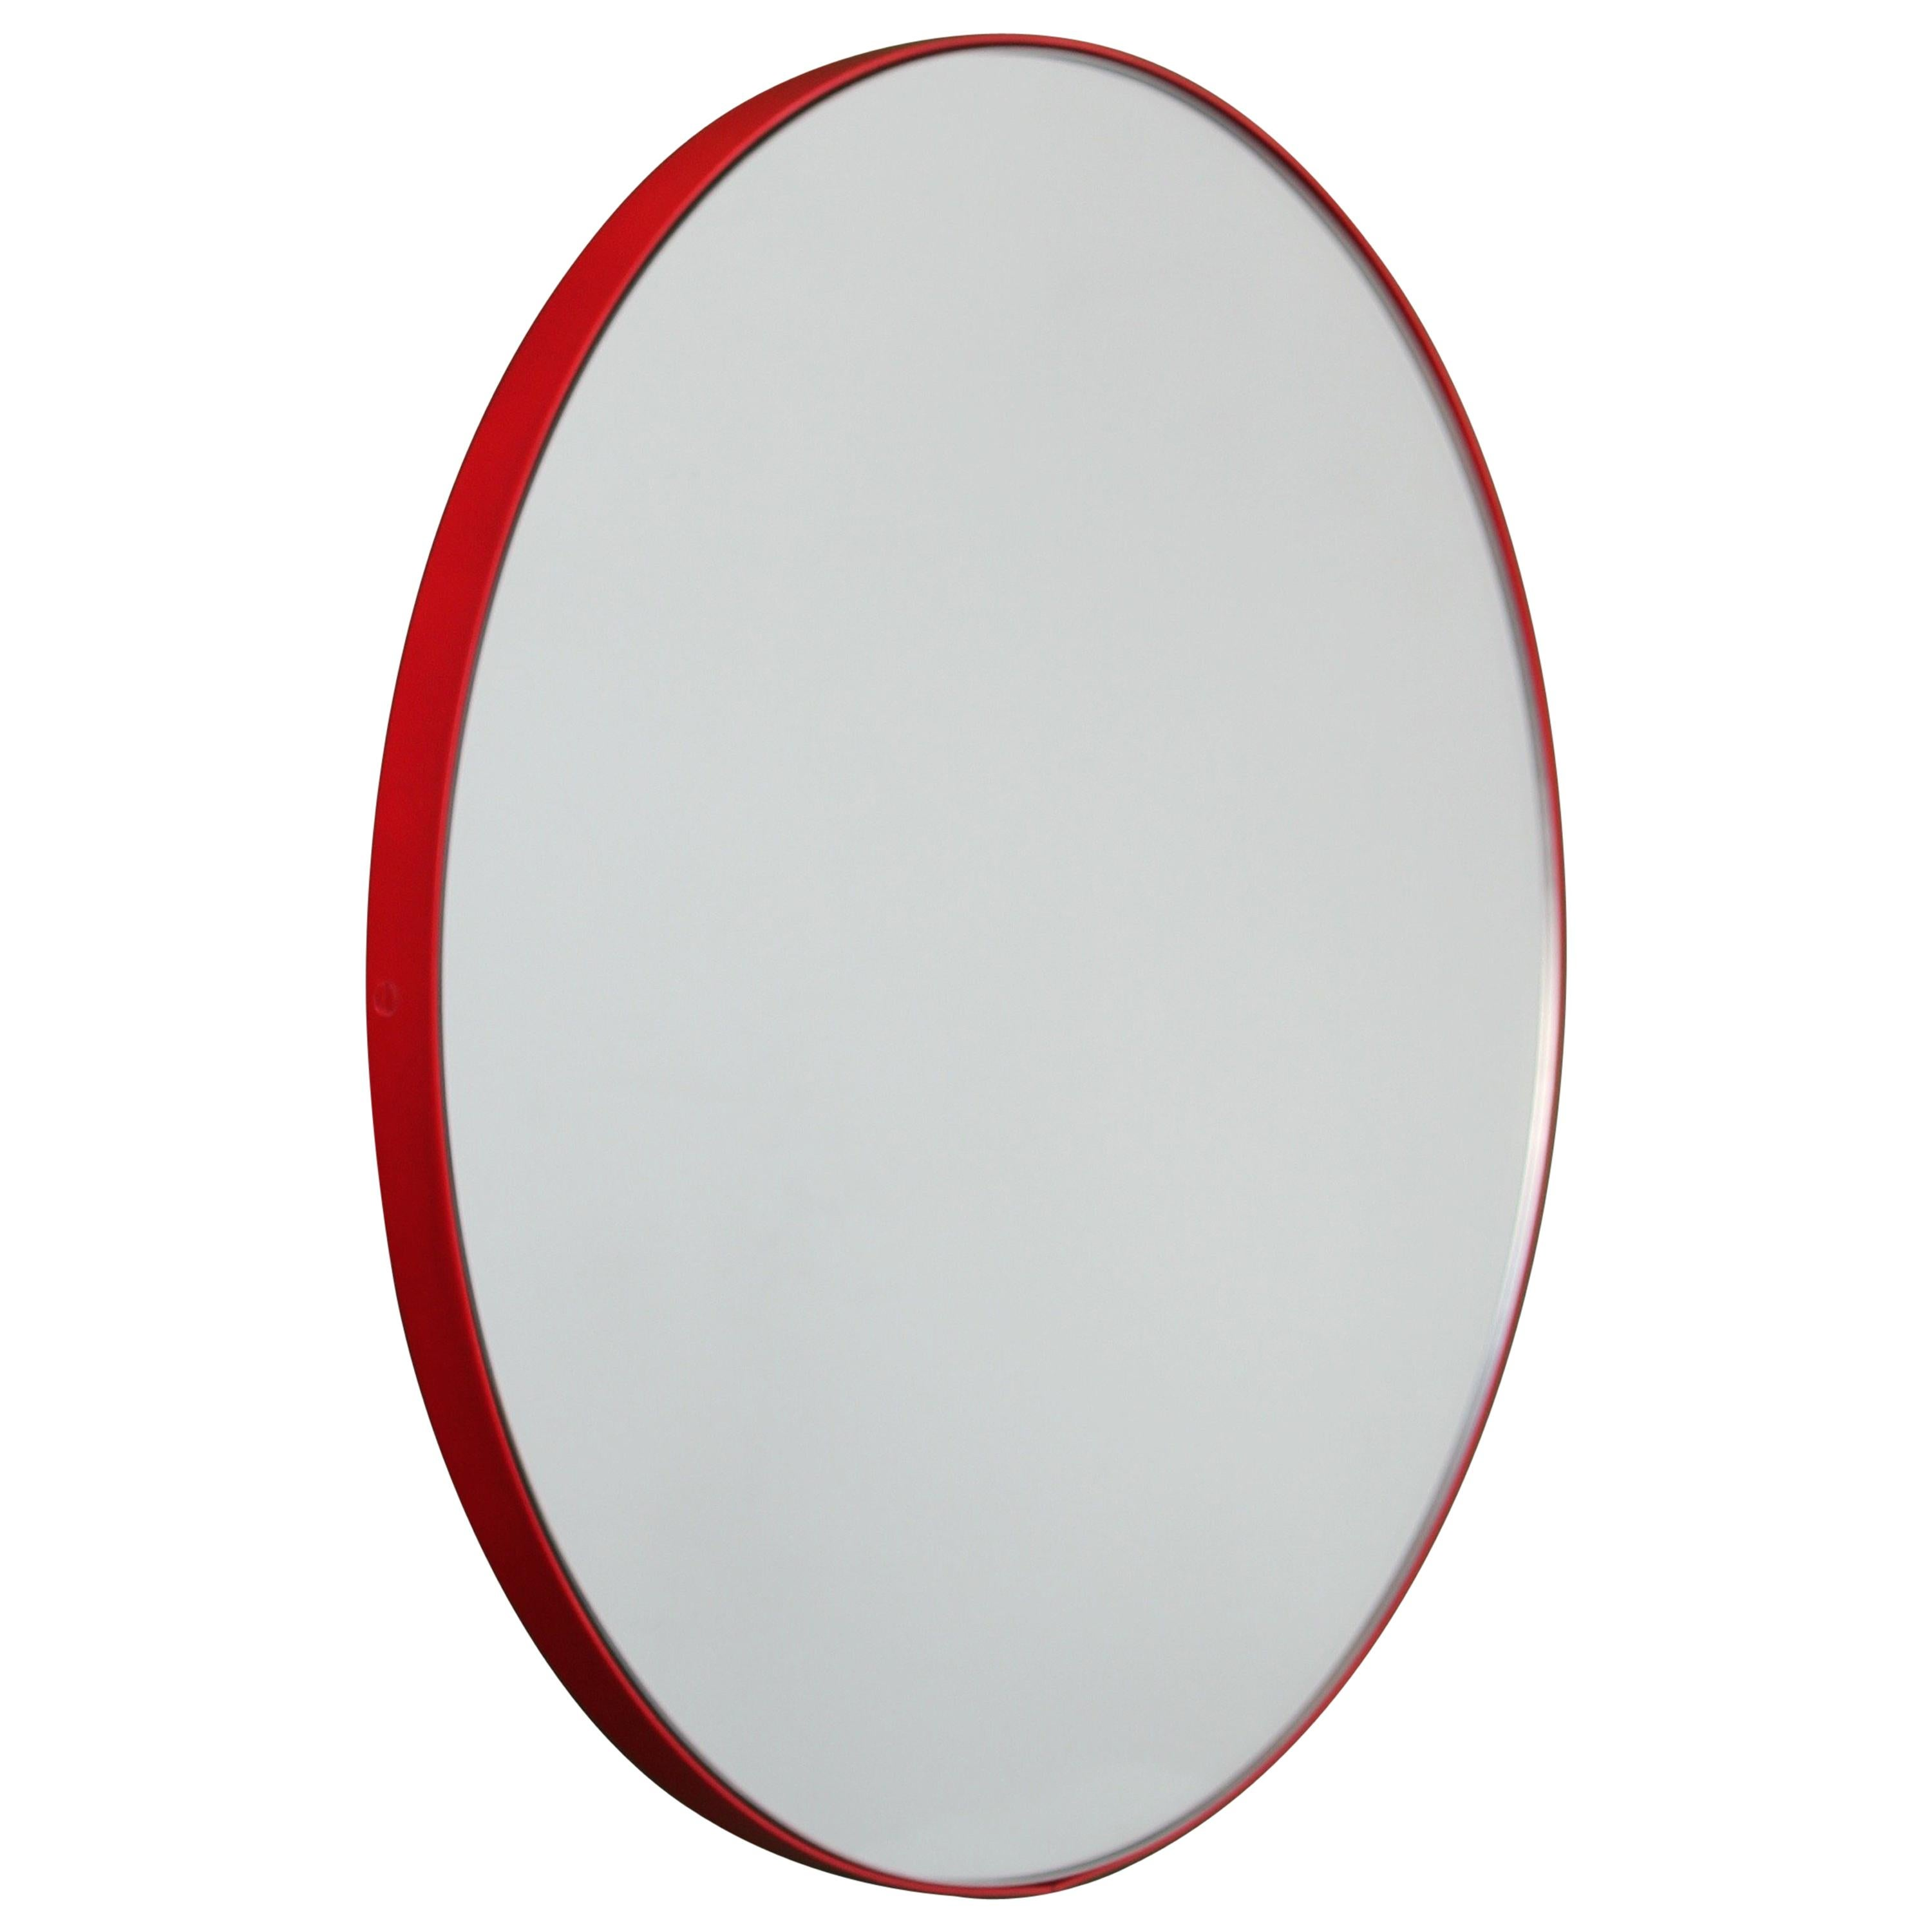 Orbis™ Round Modern Customizable Mirror with Red Frame - Oversized